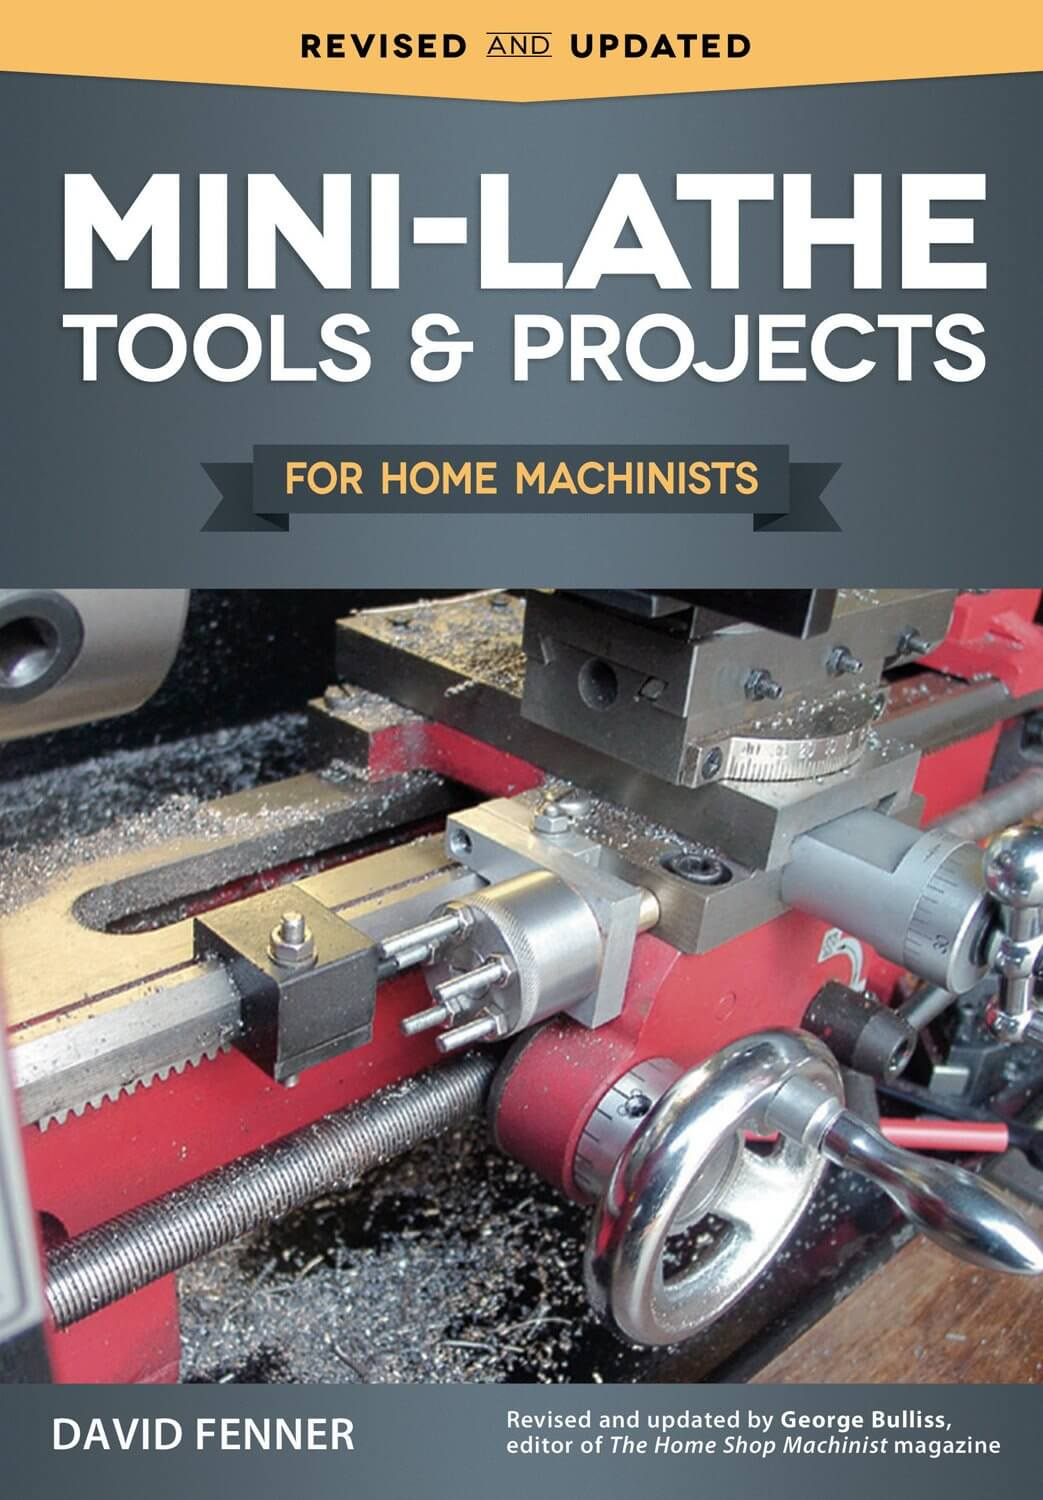 simple wood lathe projects Mini Lathe Tools And Projects For Home Machinists Simple Practical Designs Modifications To Extend Improve The Versatility Of Your Small Metal